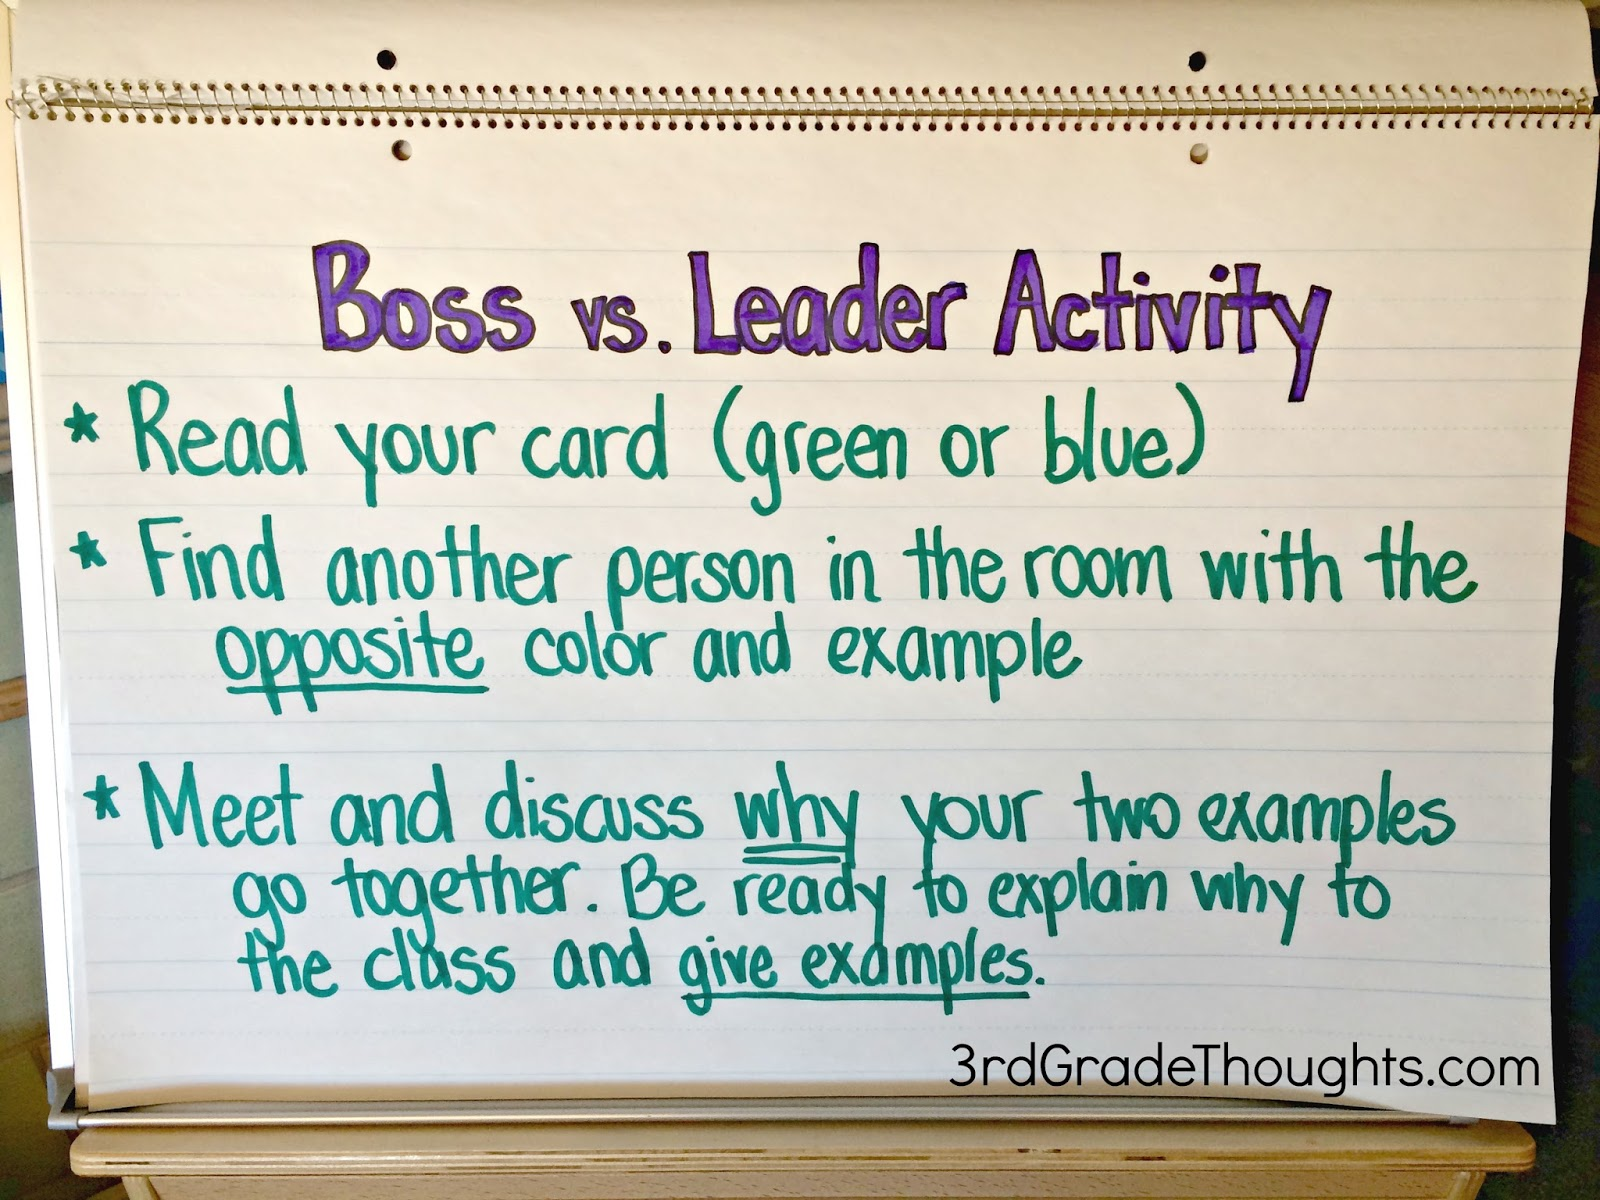 bosses vs leaders lesson bies 3rd grade thoughts bosses vs leaders lesson bies